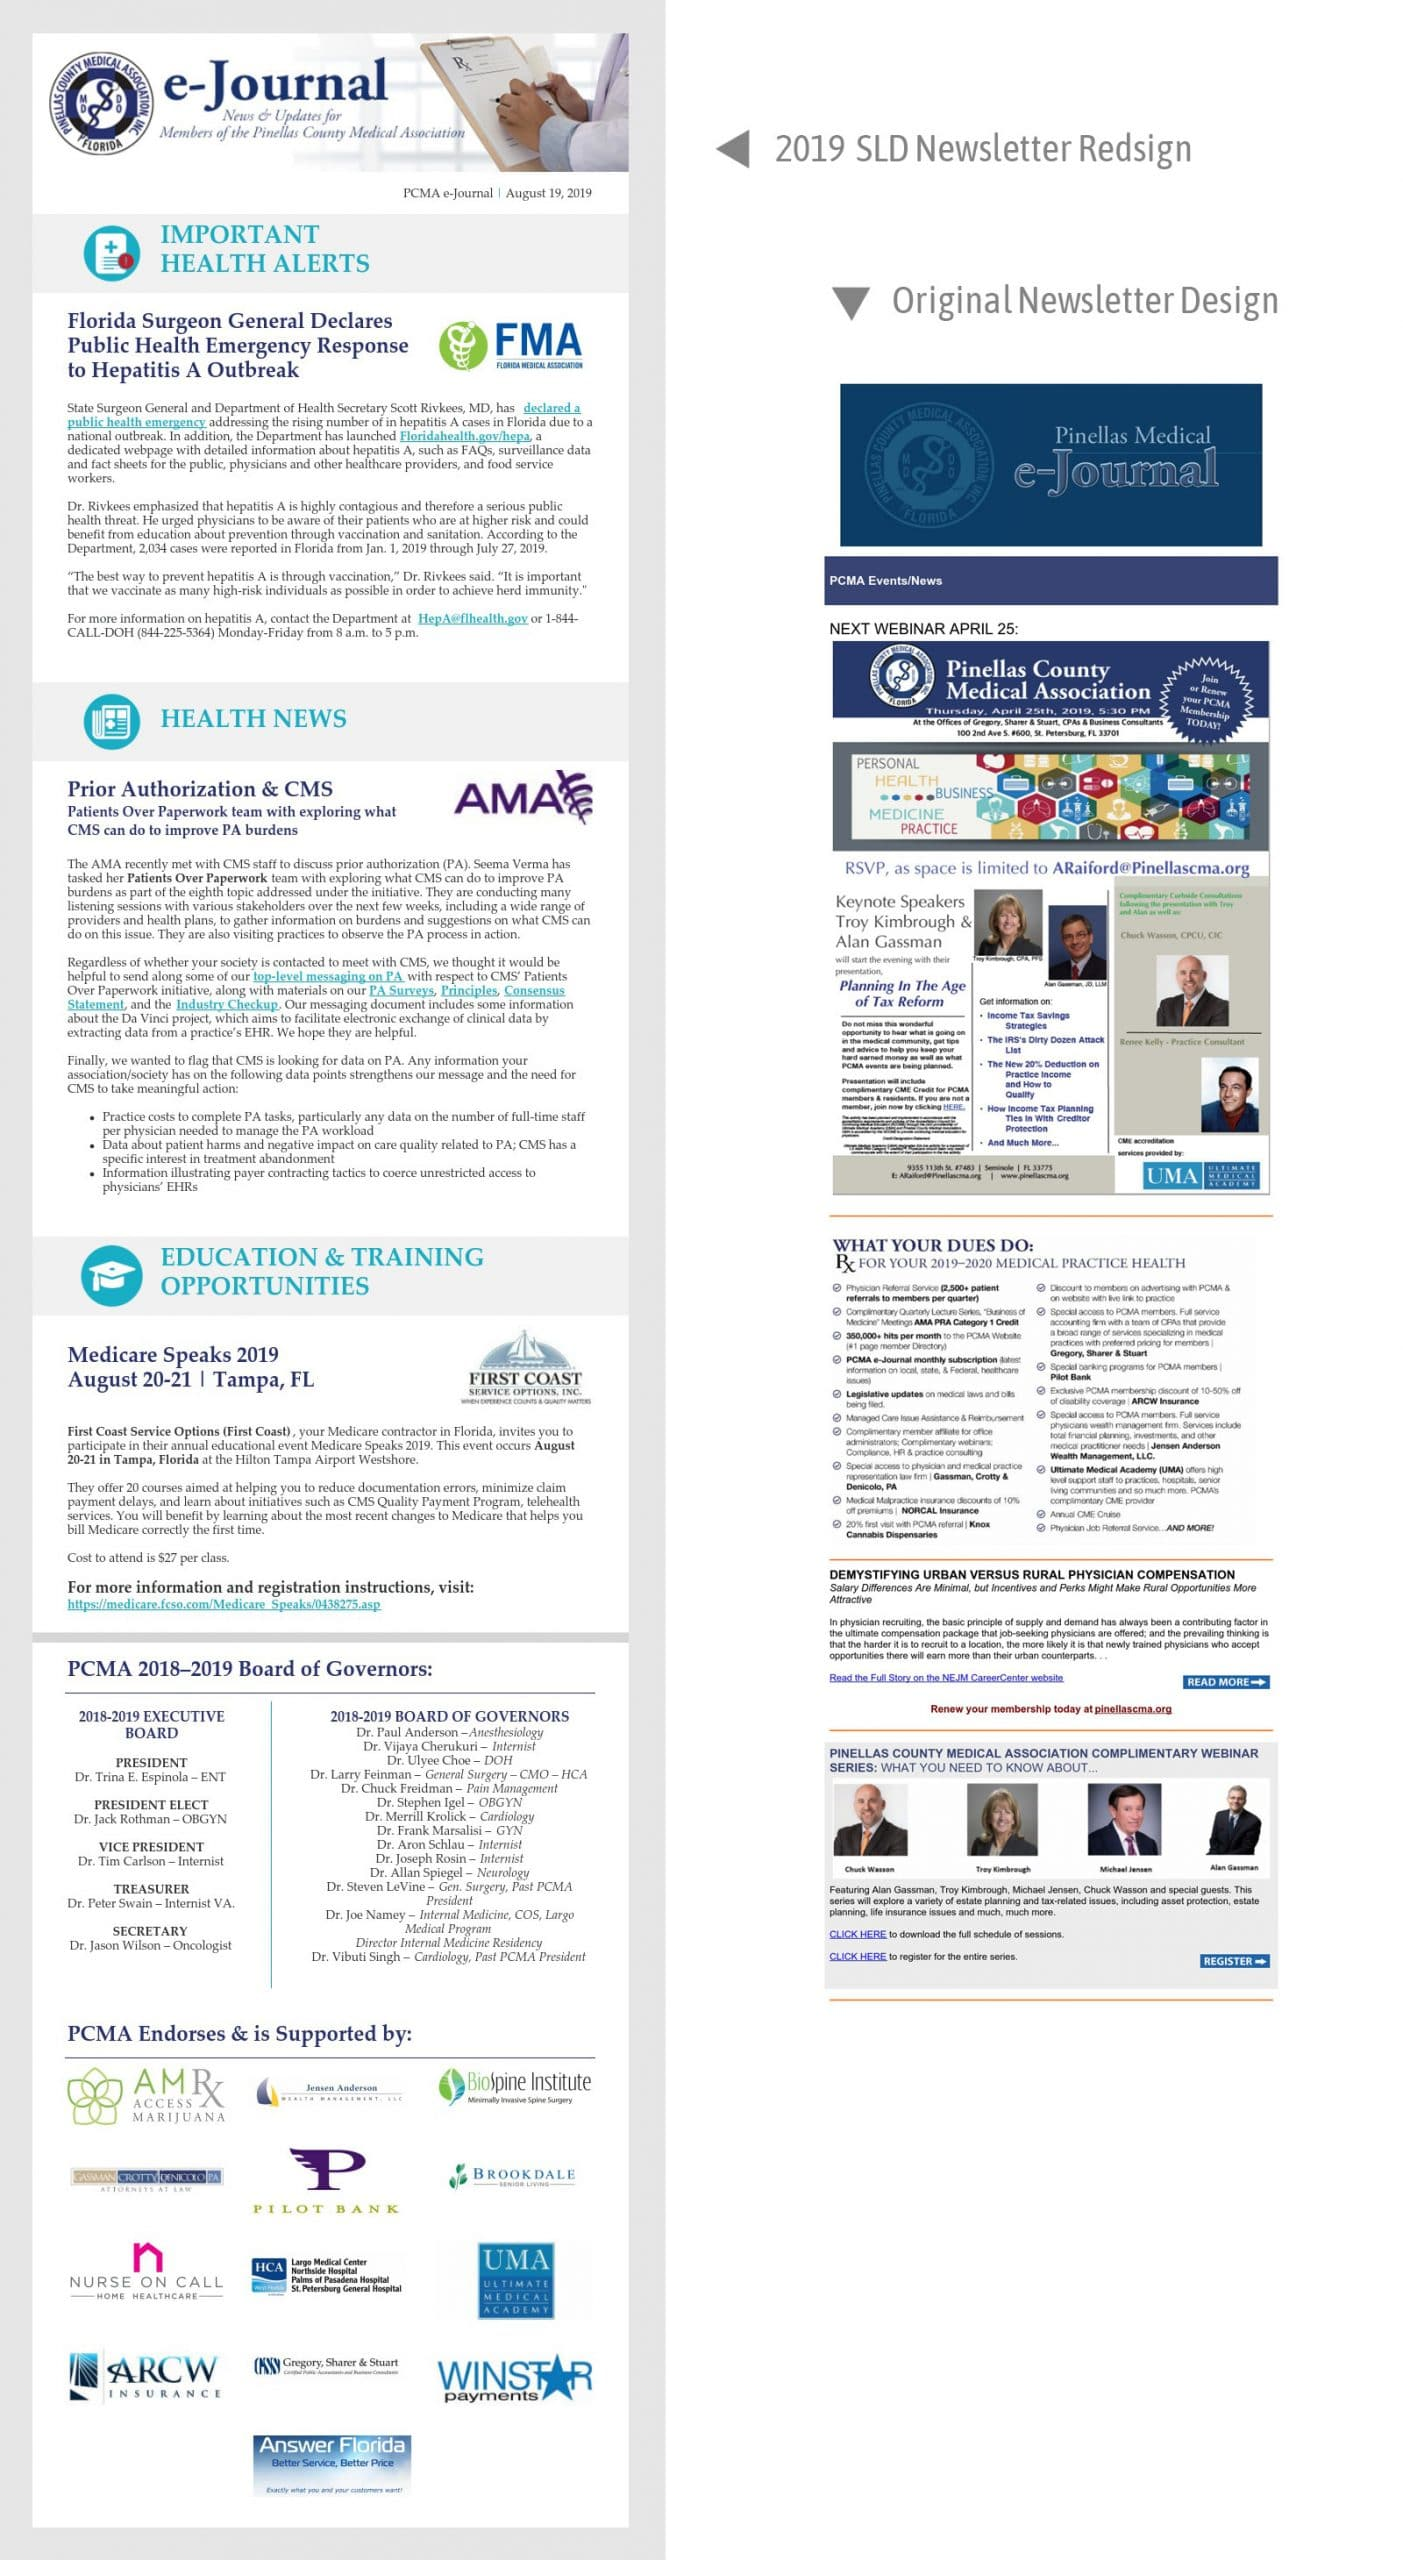 PCMA Newsletter Redesign